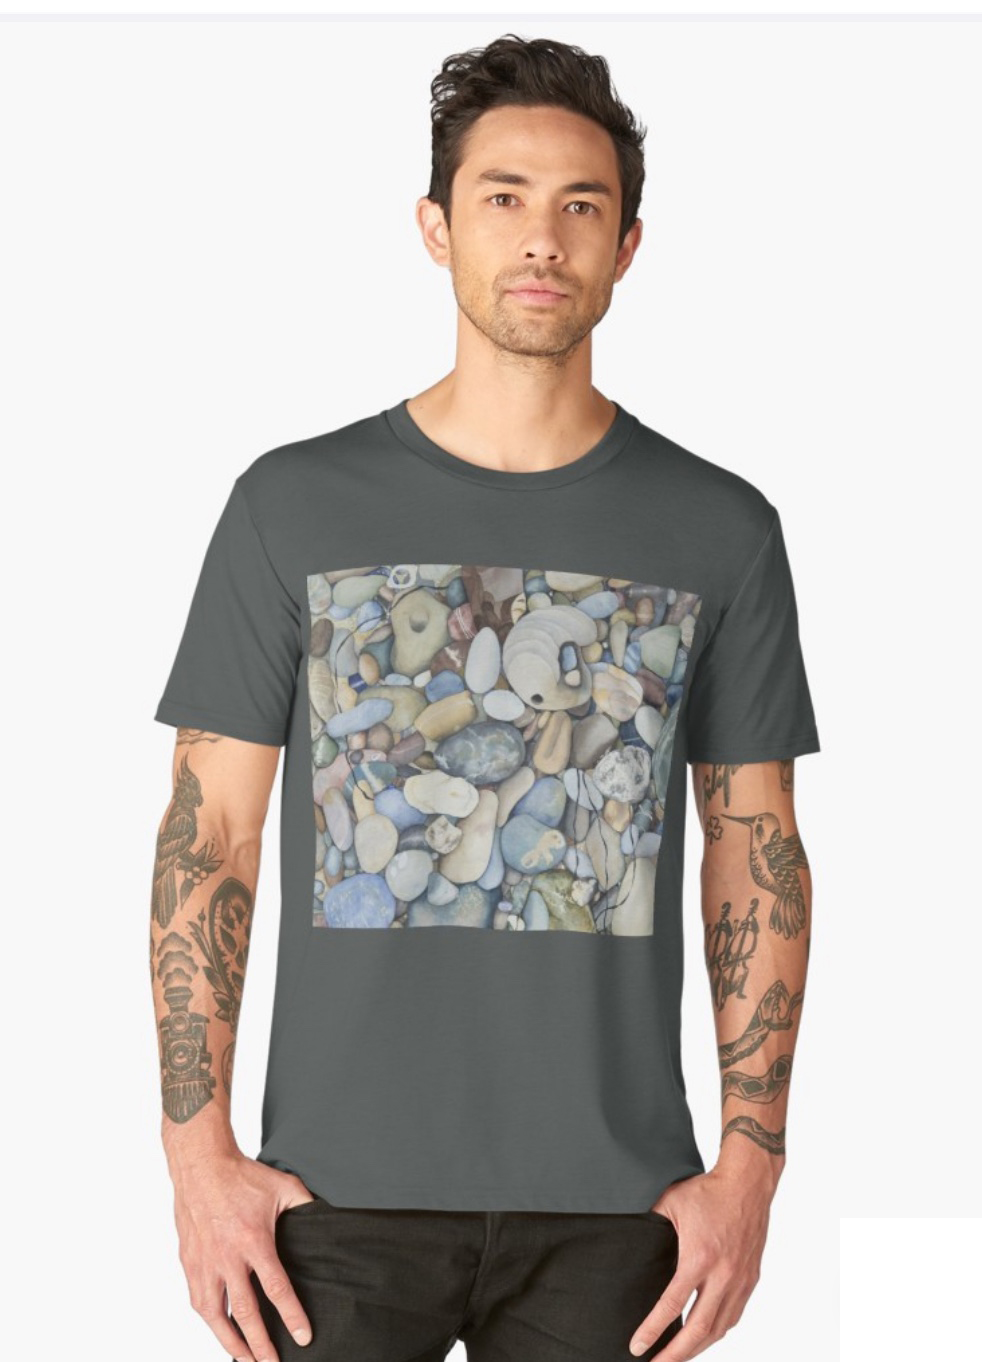 Pescadero Beach Pebbles - This design is available in men's, women's and kids' apparel, home decor and gift items.